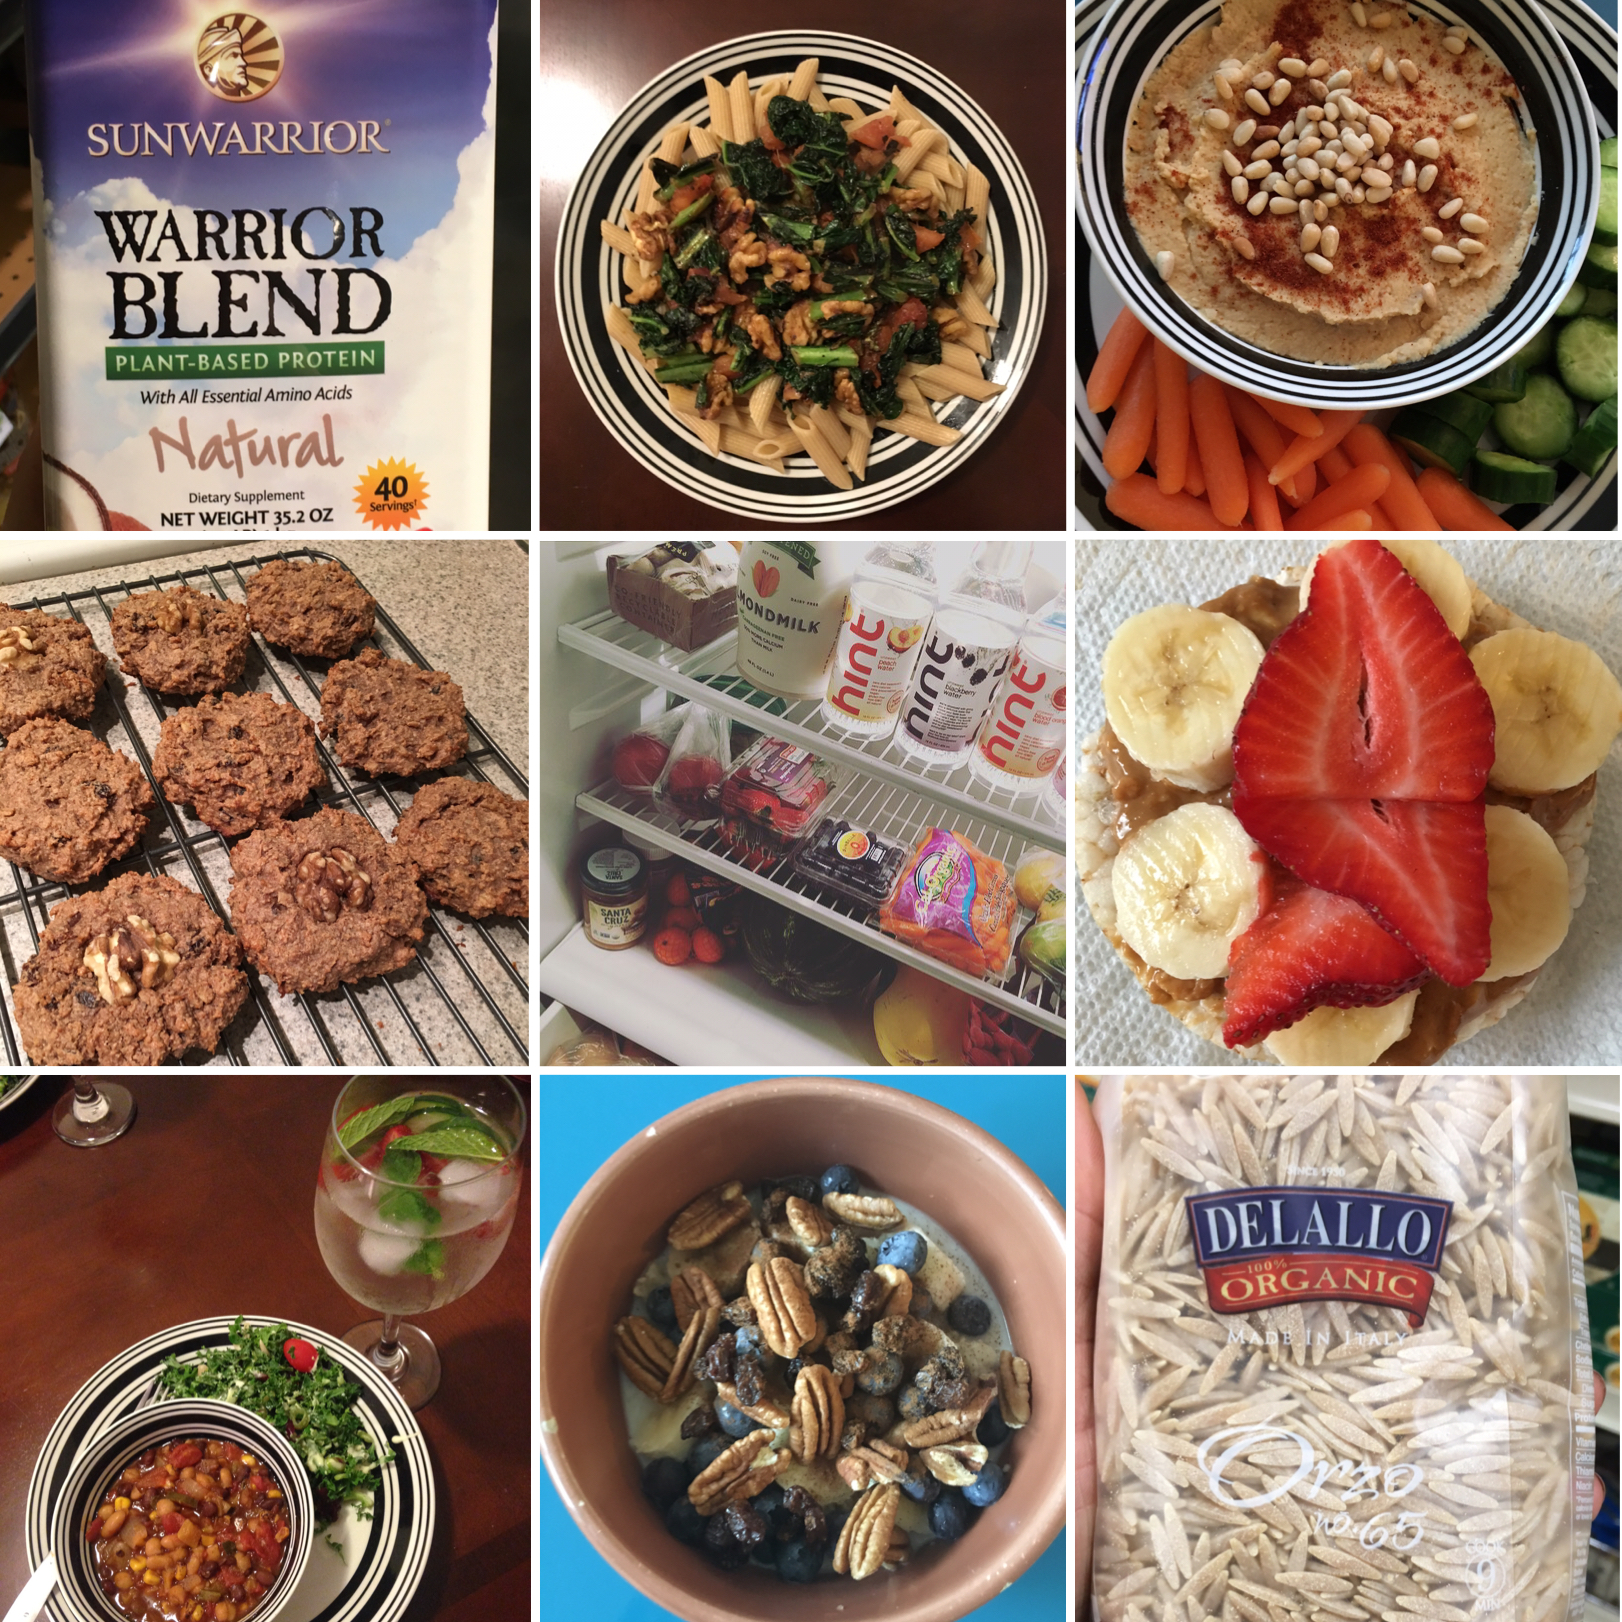 I am certainly not a chef but here are some of the random things I made and ate while on the fast: Vegetable based protein (you can find at whole foods and Target. For the best results, blend it with peanut butter, almond milk and fruit)/Kale, fresh tomato, walnut and garlic almond milk sauce over whole grain penne pasta/Hummus with toasted pine nuts/ Daniel Fast cookies / Preparation for the fast (super important) /Almond butter, bananas and strawberries on a brown rice cake/ Daniel Fast Chili  with a kale, apple, balsamic-olive oil salad and  strawberry, lime and mint water /Whole grain oats with almond milk, almond butter, cinnamon, pecans, blueberries and raisins/Delallo Organic Whole Grain Pasta (which was my favorite brand on the fast)/For more Daniel Fast recipes, click  HERE  or the photo.